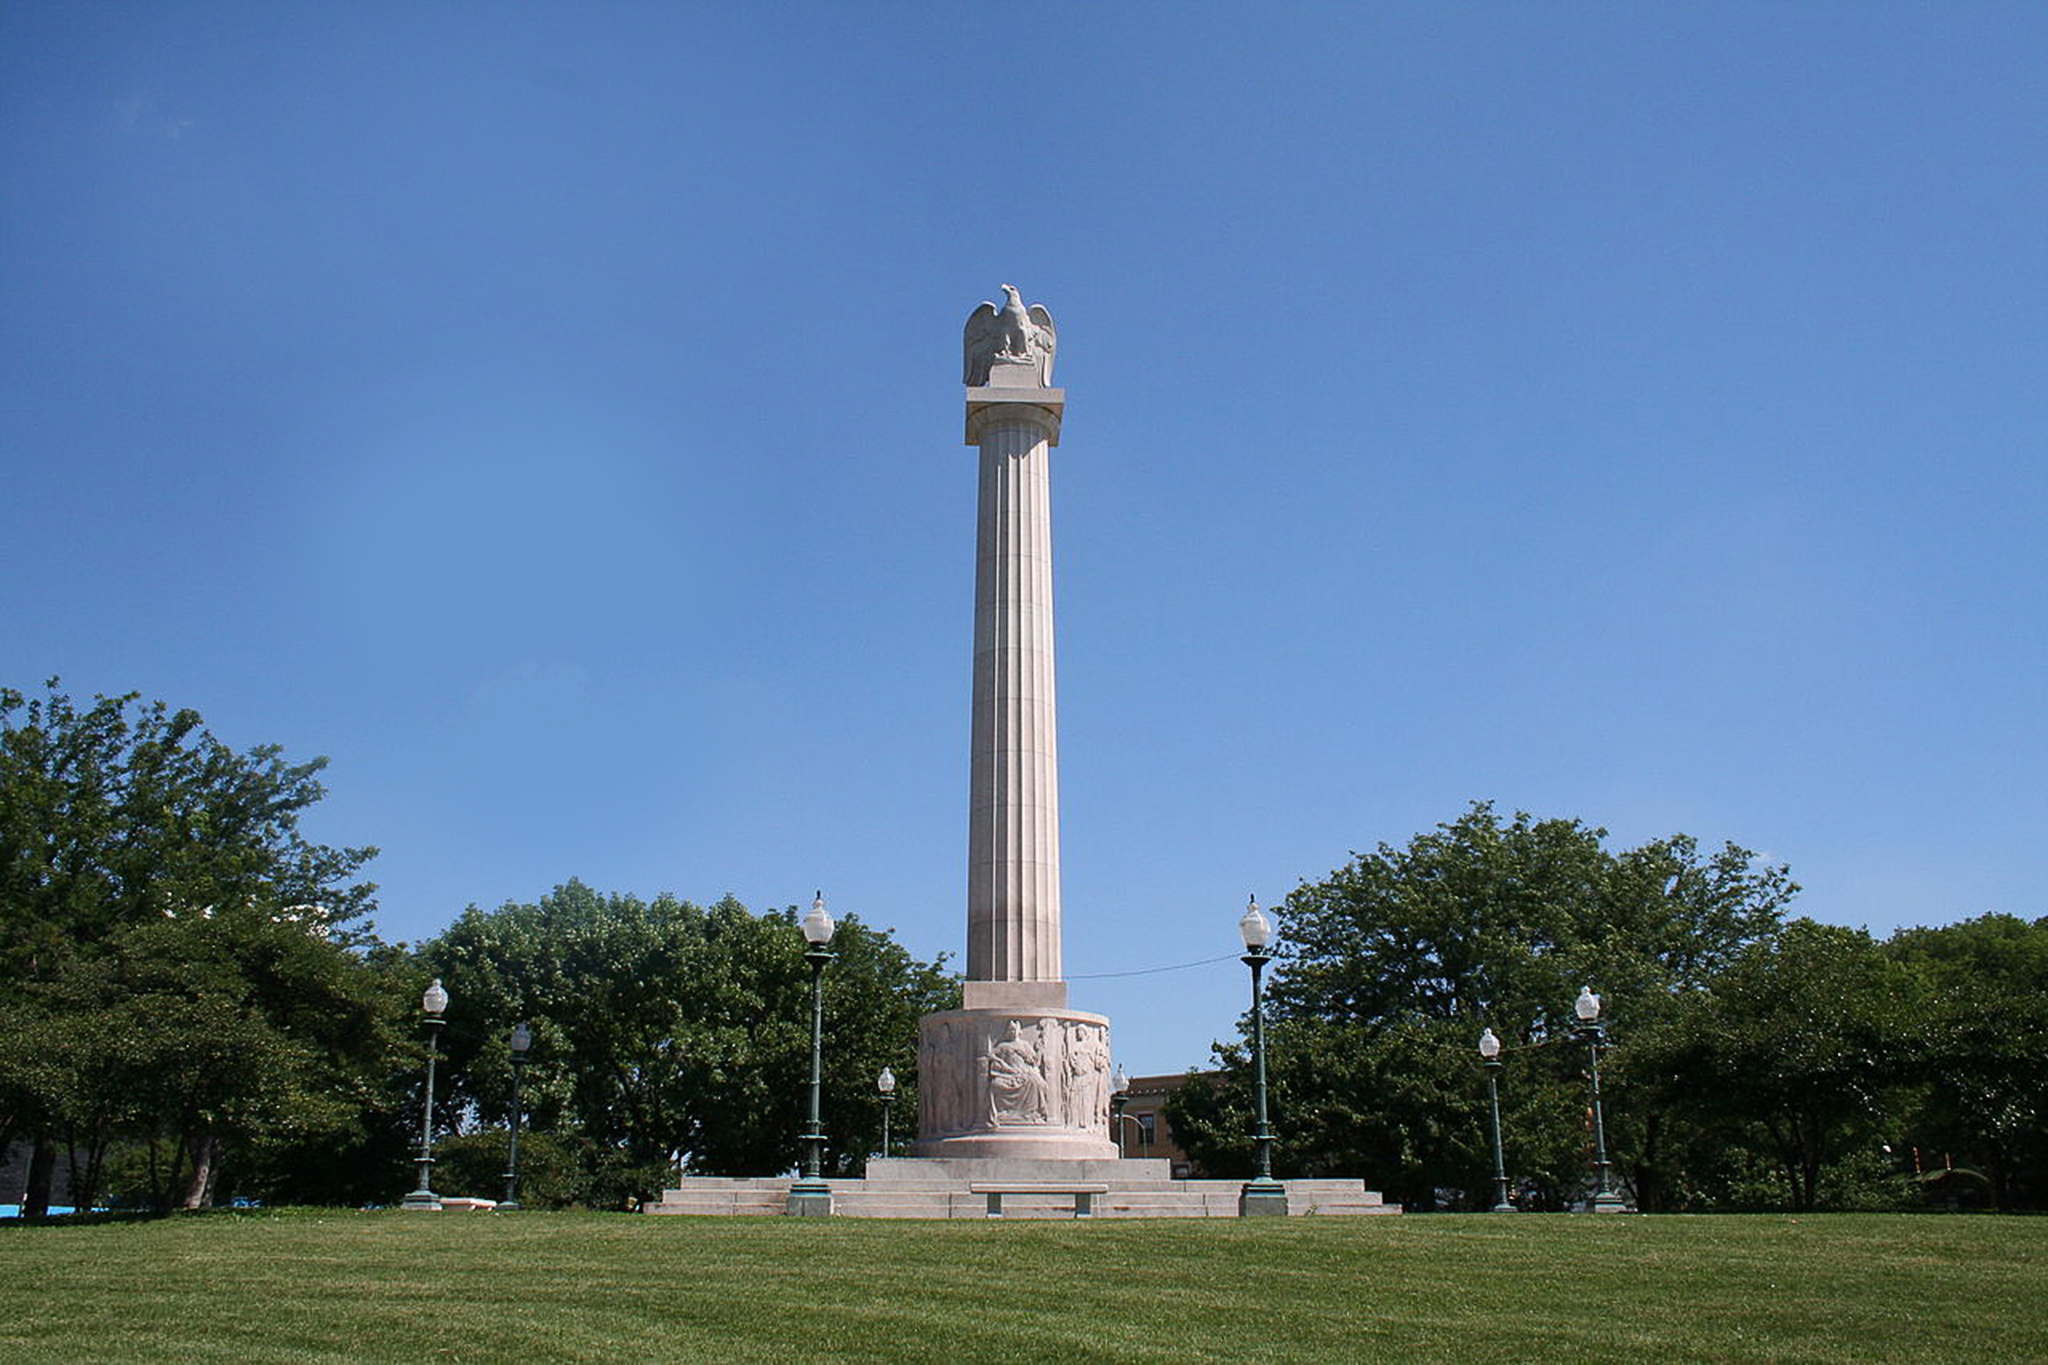 LoganSquareMonument.Venue.jpg